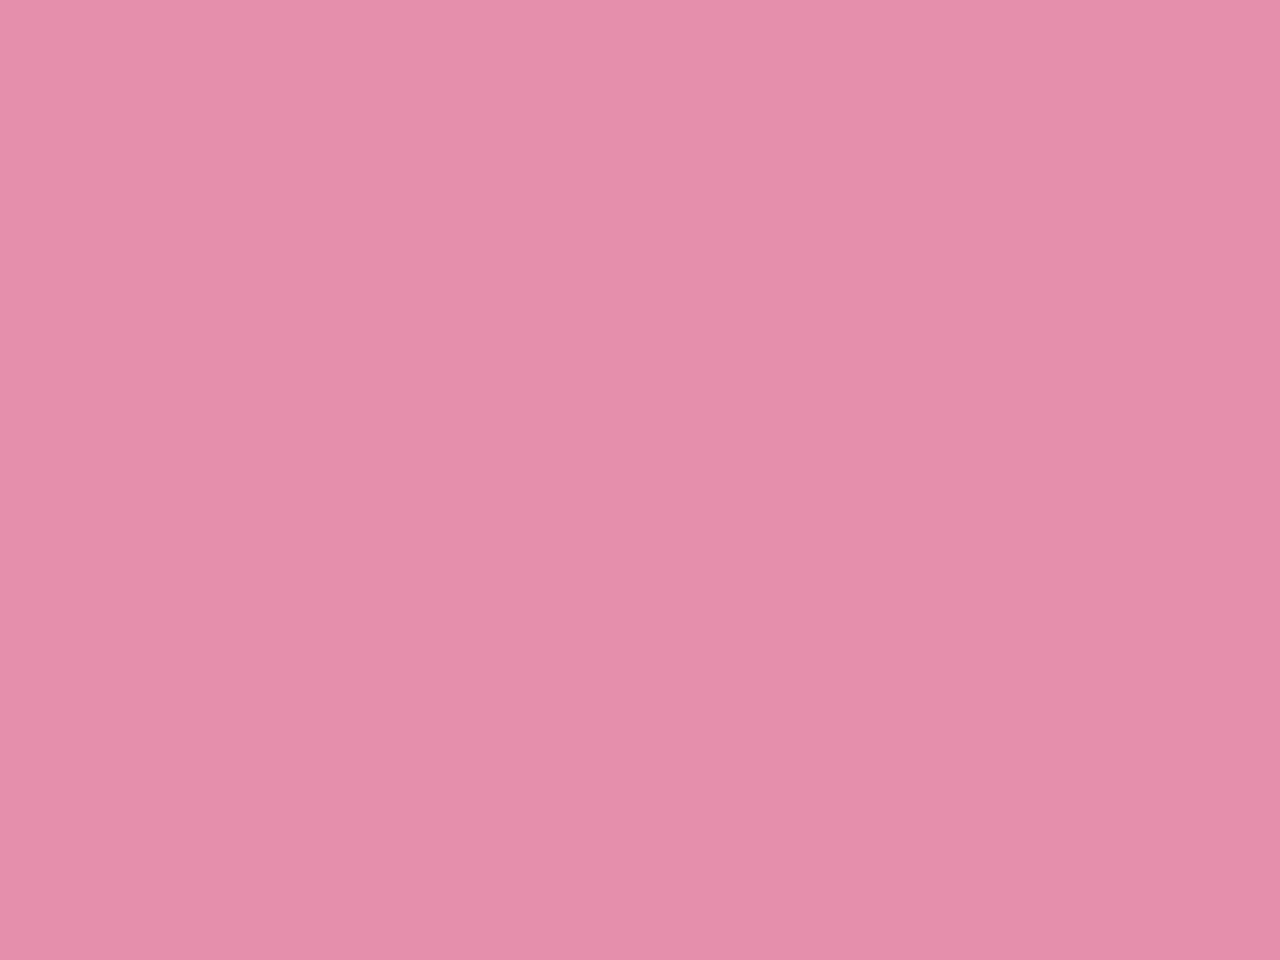 1280x960 Light Thulian Pink Solid Color Background